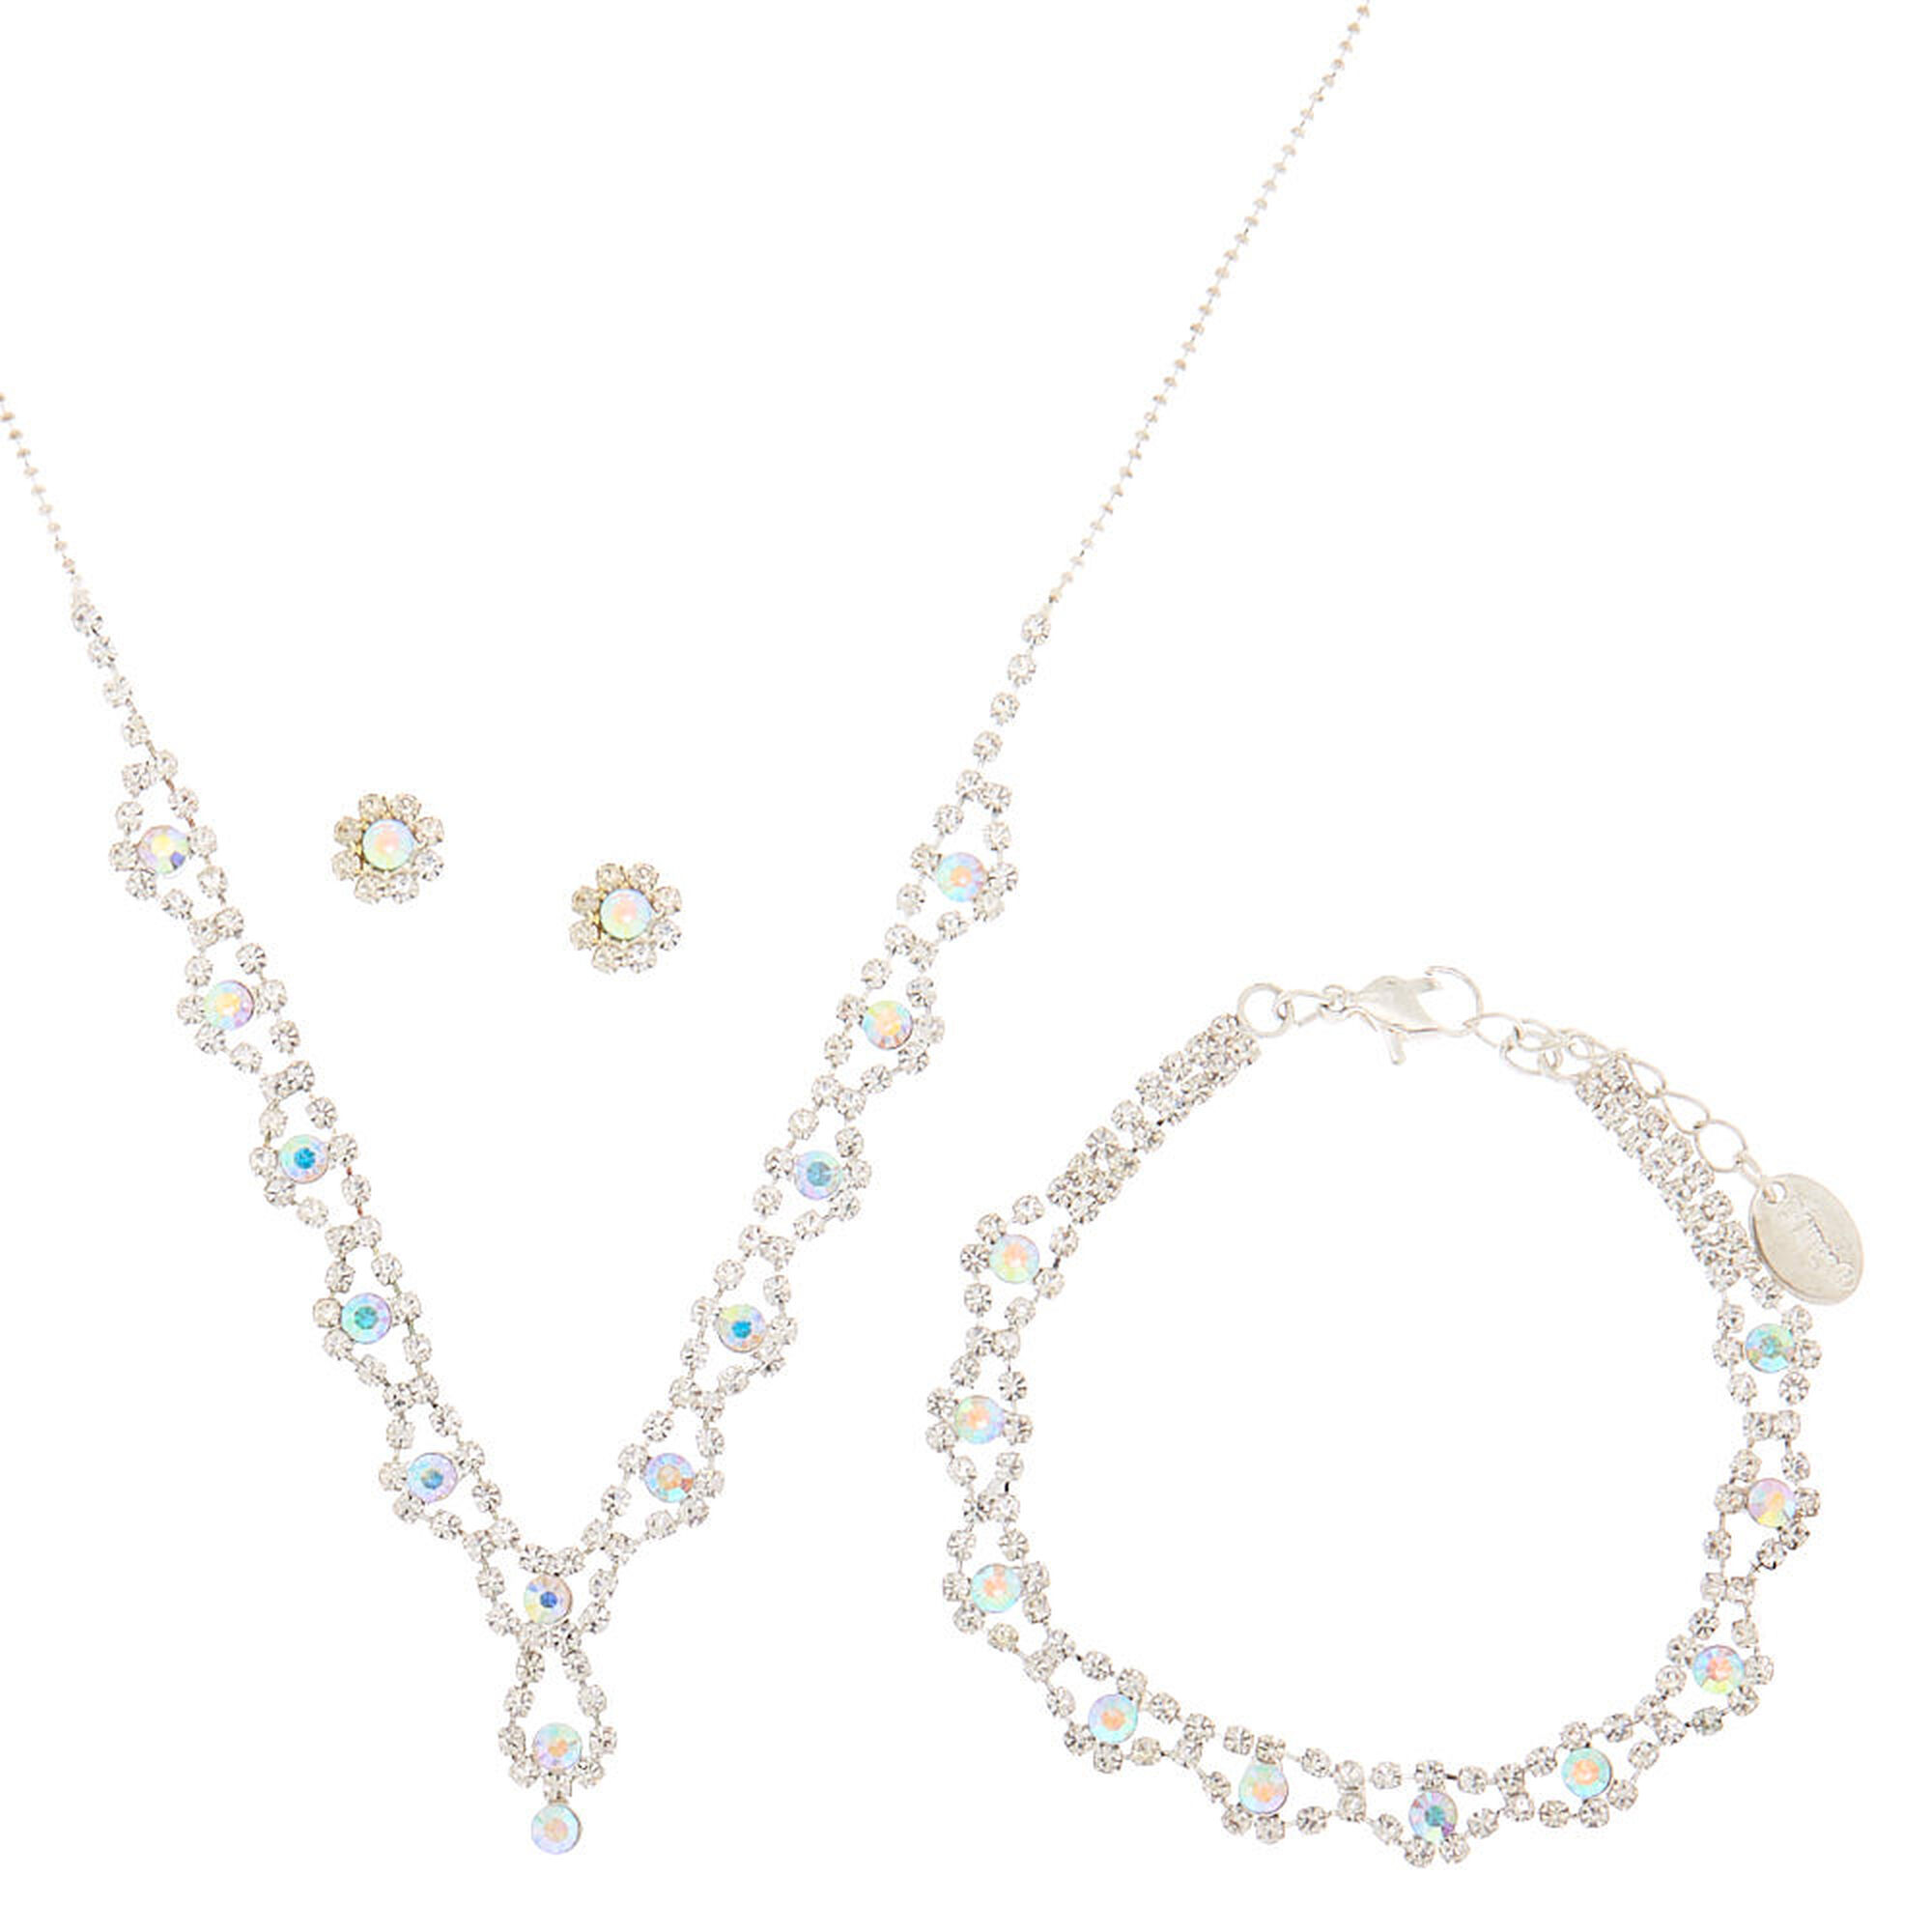 Clear Rhinestone And Aurora Borealis Crystal Scalloped Y Necklace, Bracelet  And Flower Stud Earrings Set Of 3